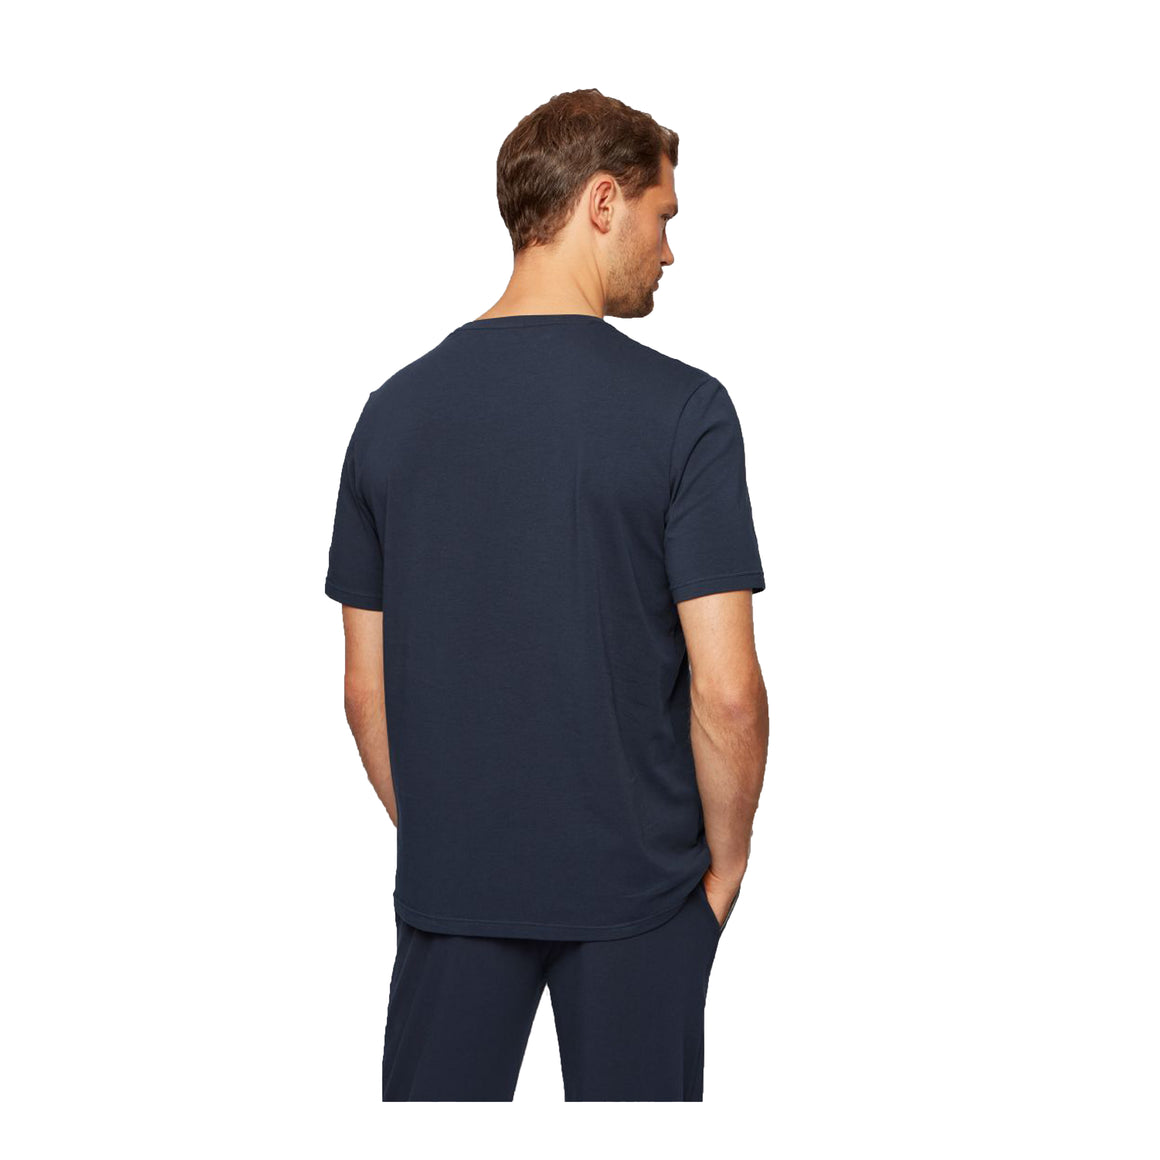 Lounge T-Shirt for Men in Navy